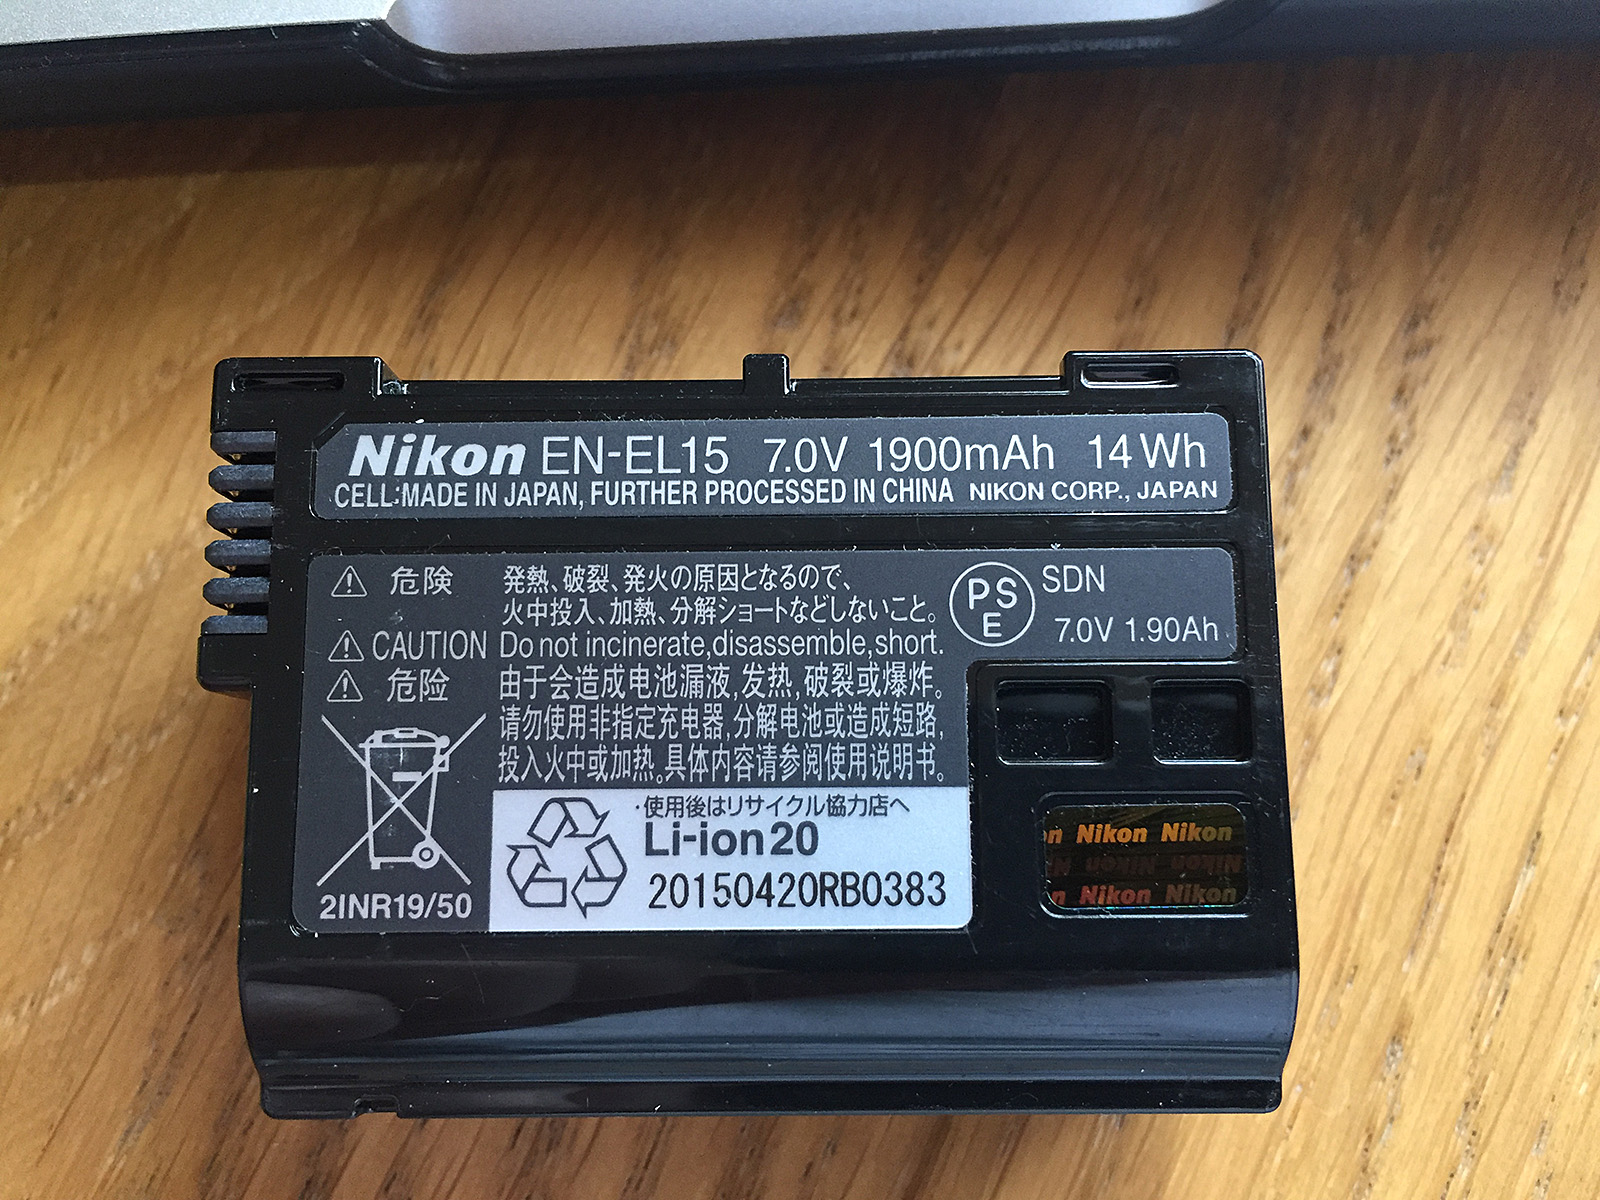 Here the Nikon EN-El15 specifies the watt-hour capacity from which we can calculate the single cell equivalency as 3780mAh.